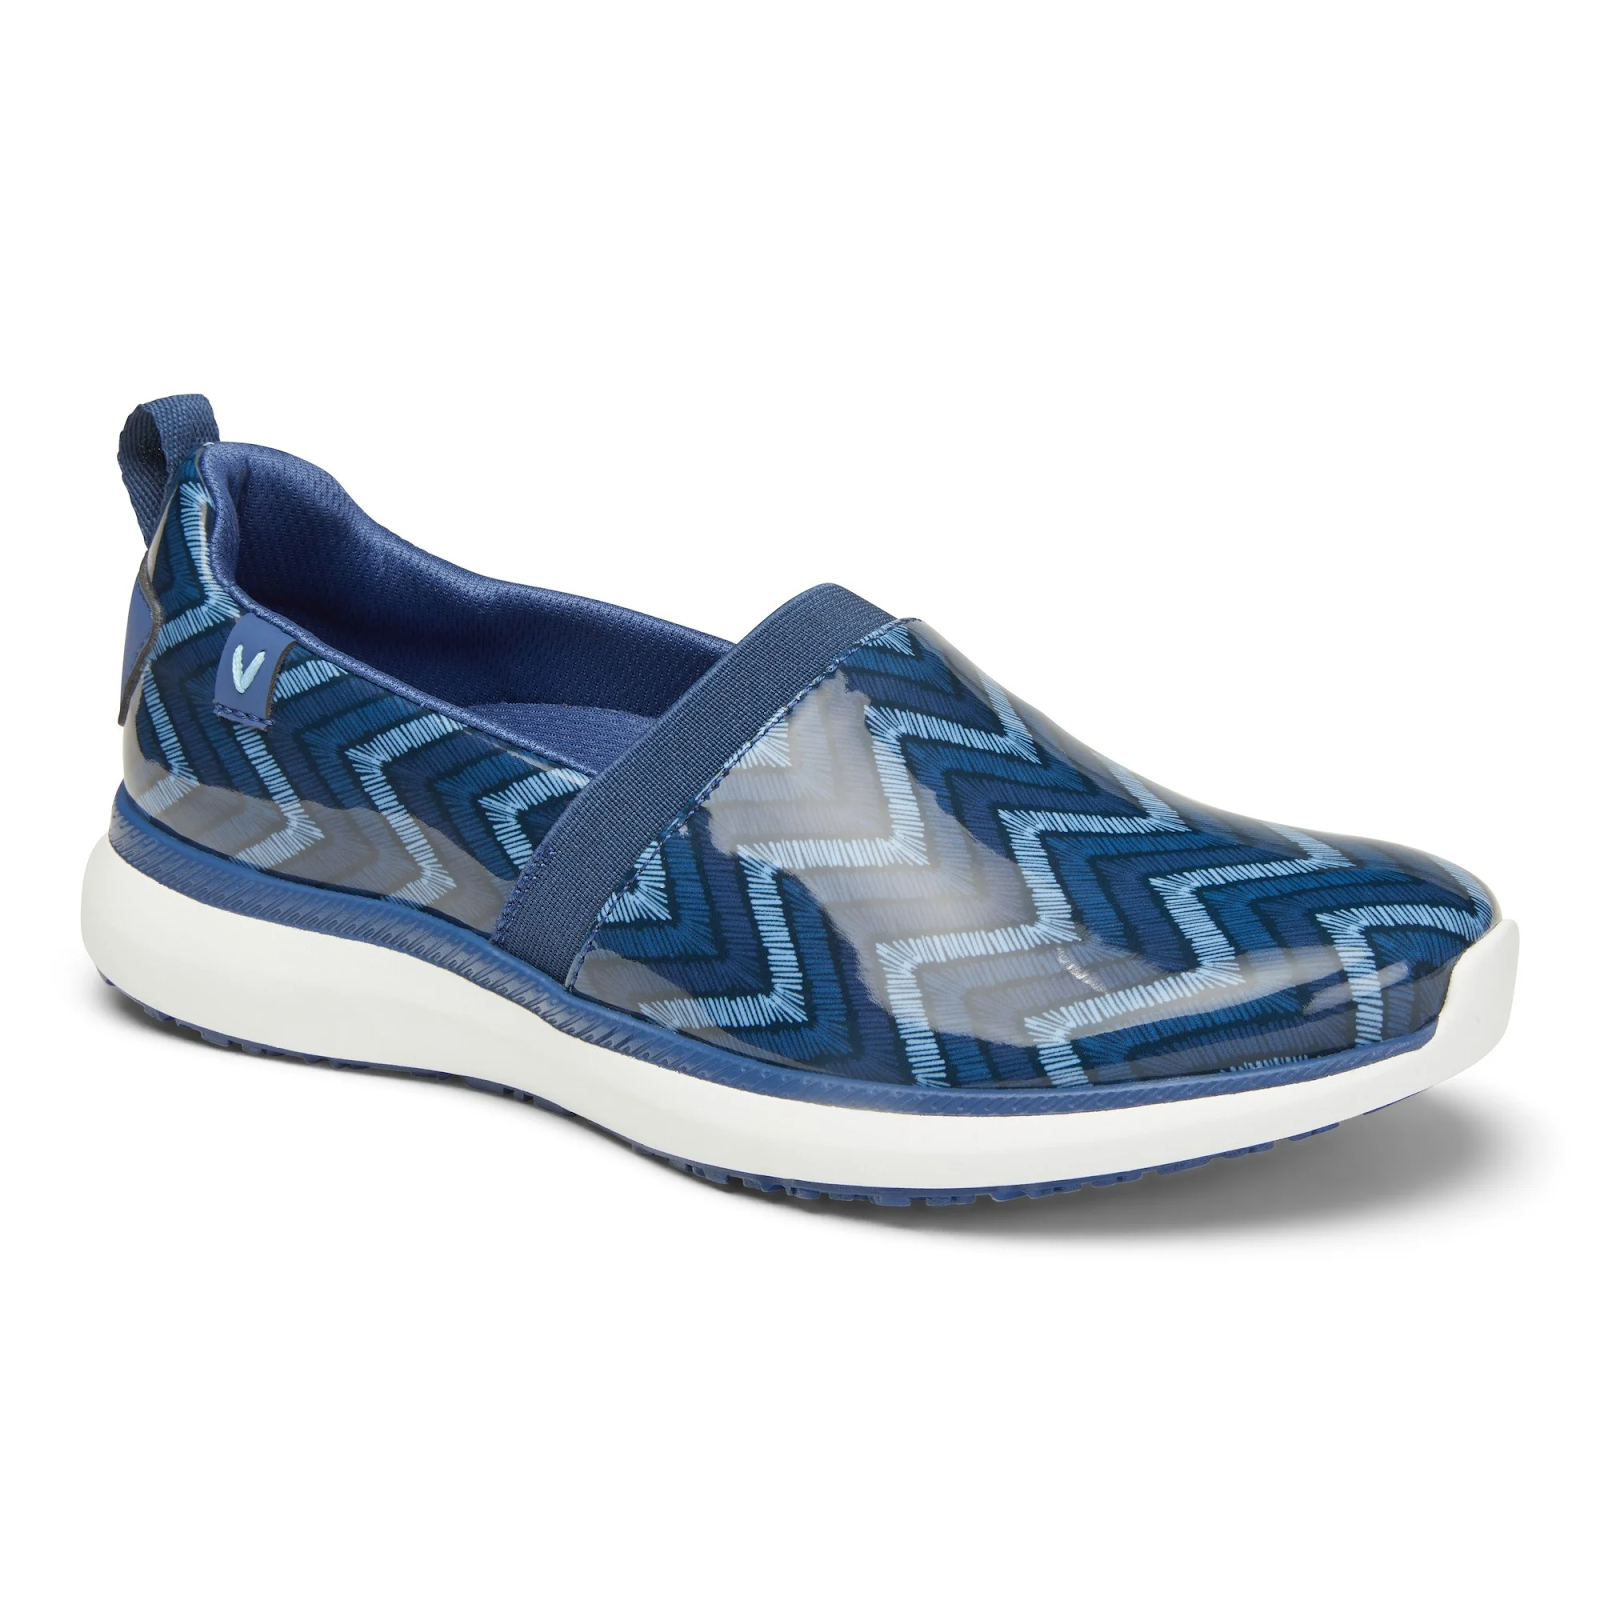 6 Stylish Shoes To Wear With Scrubs Vionic